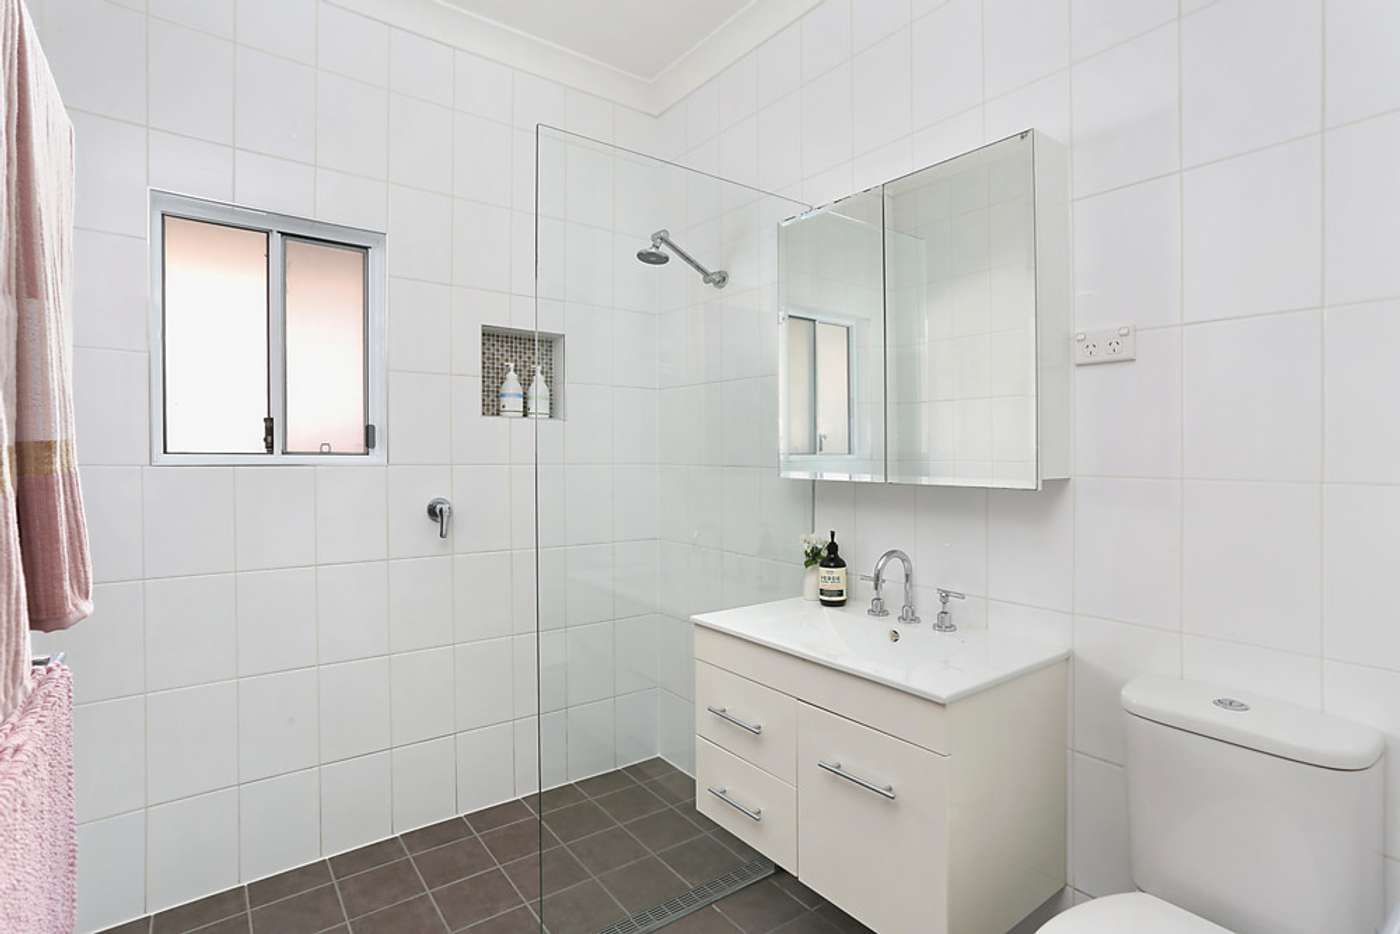 Fifth view of Homely house listing, 5 Mount Street, Mount Saint Thomas NSW 2500